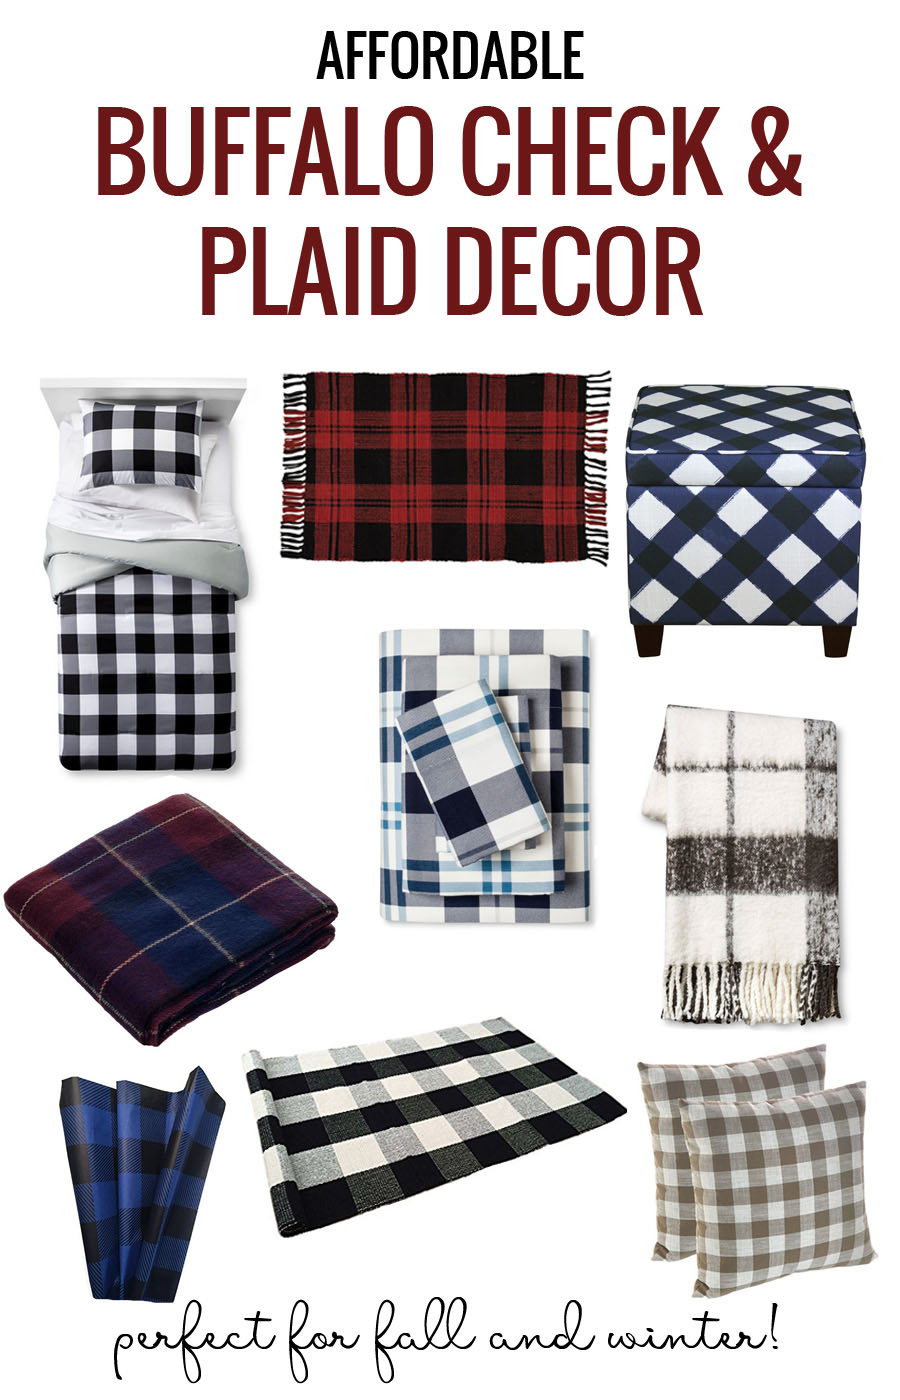 Affordable Plaid and Buffalo Check Home Decor Items